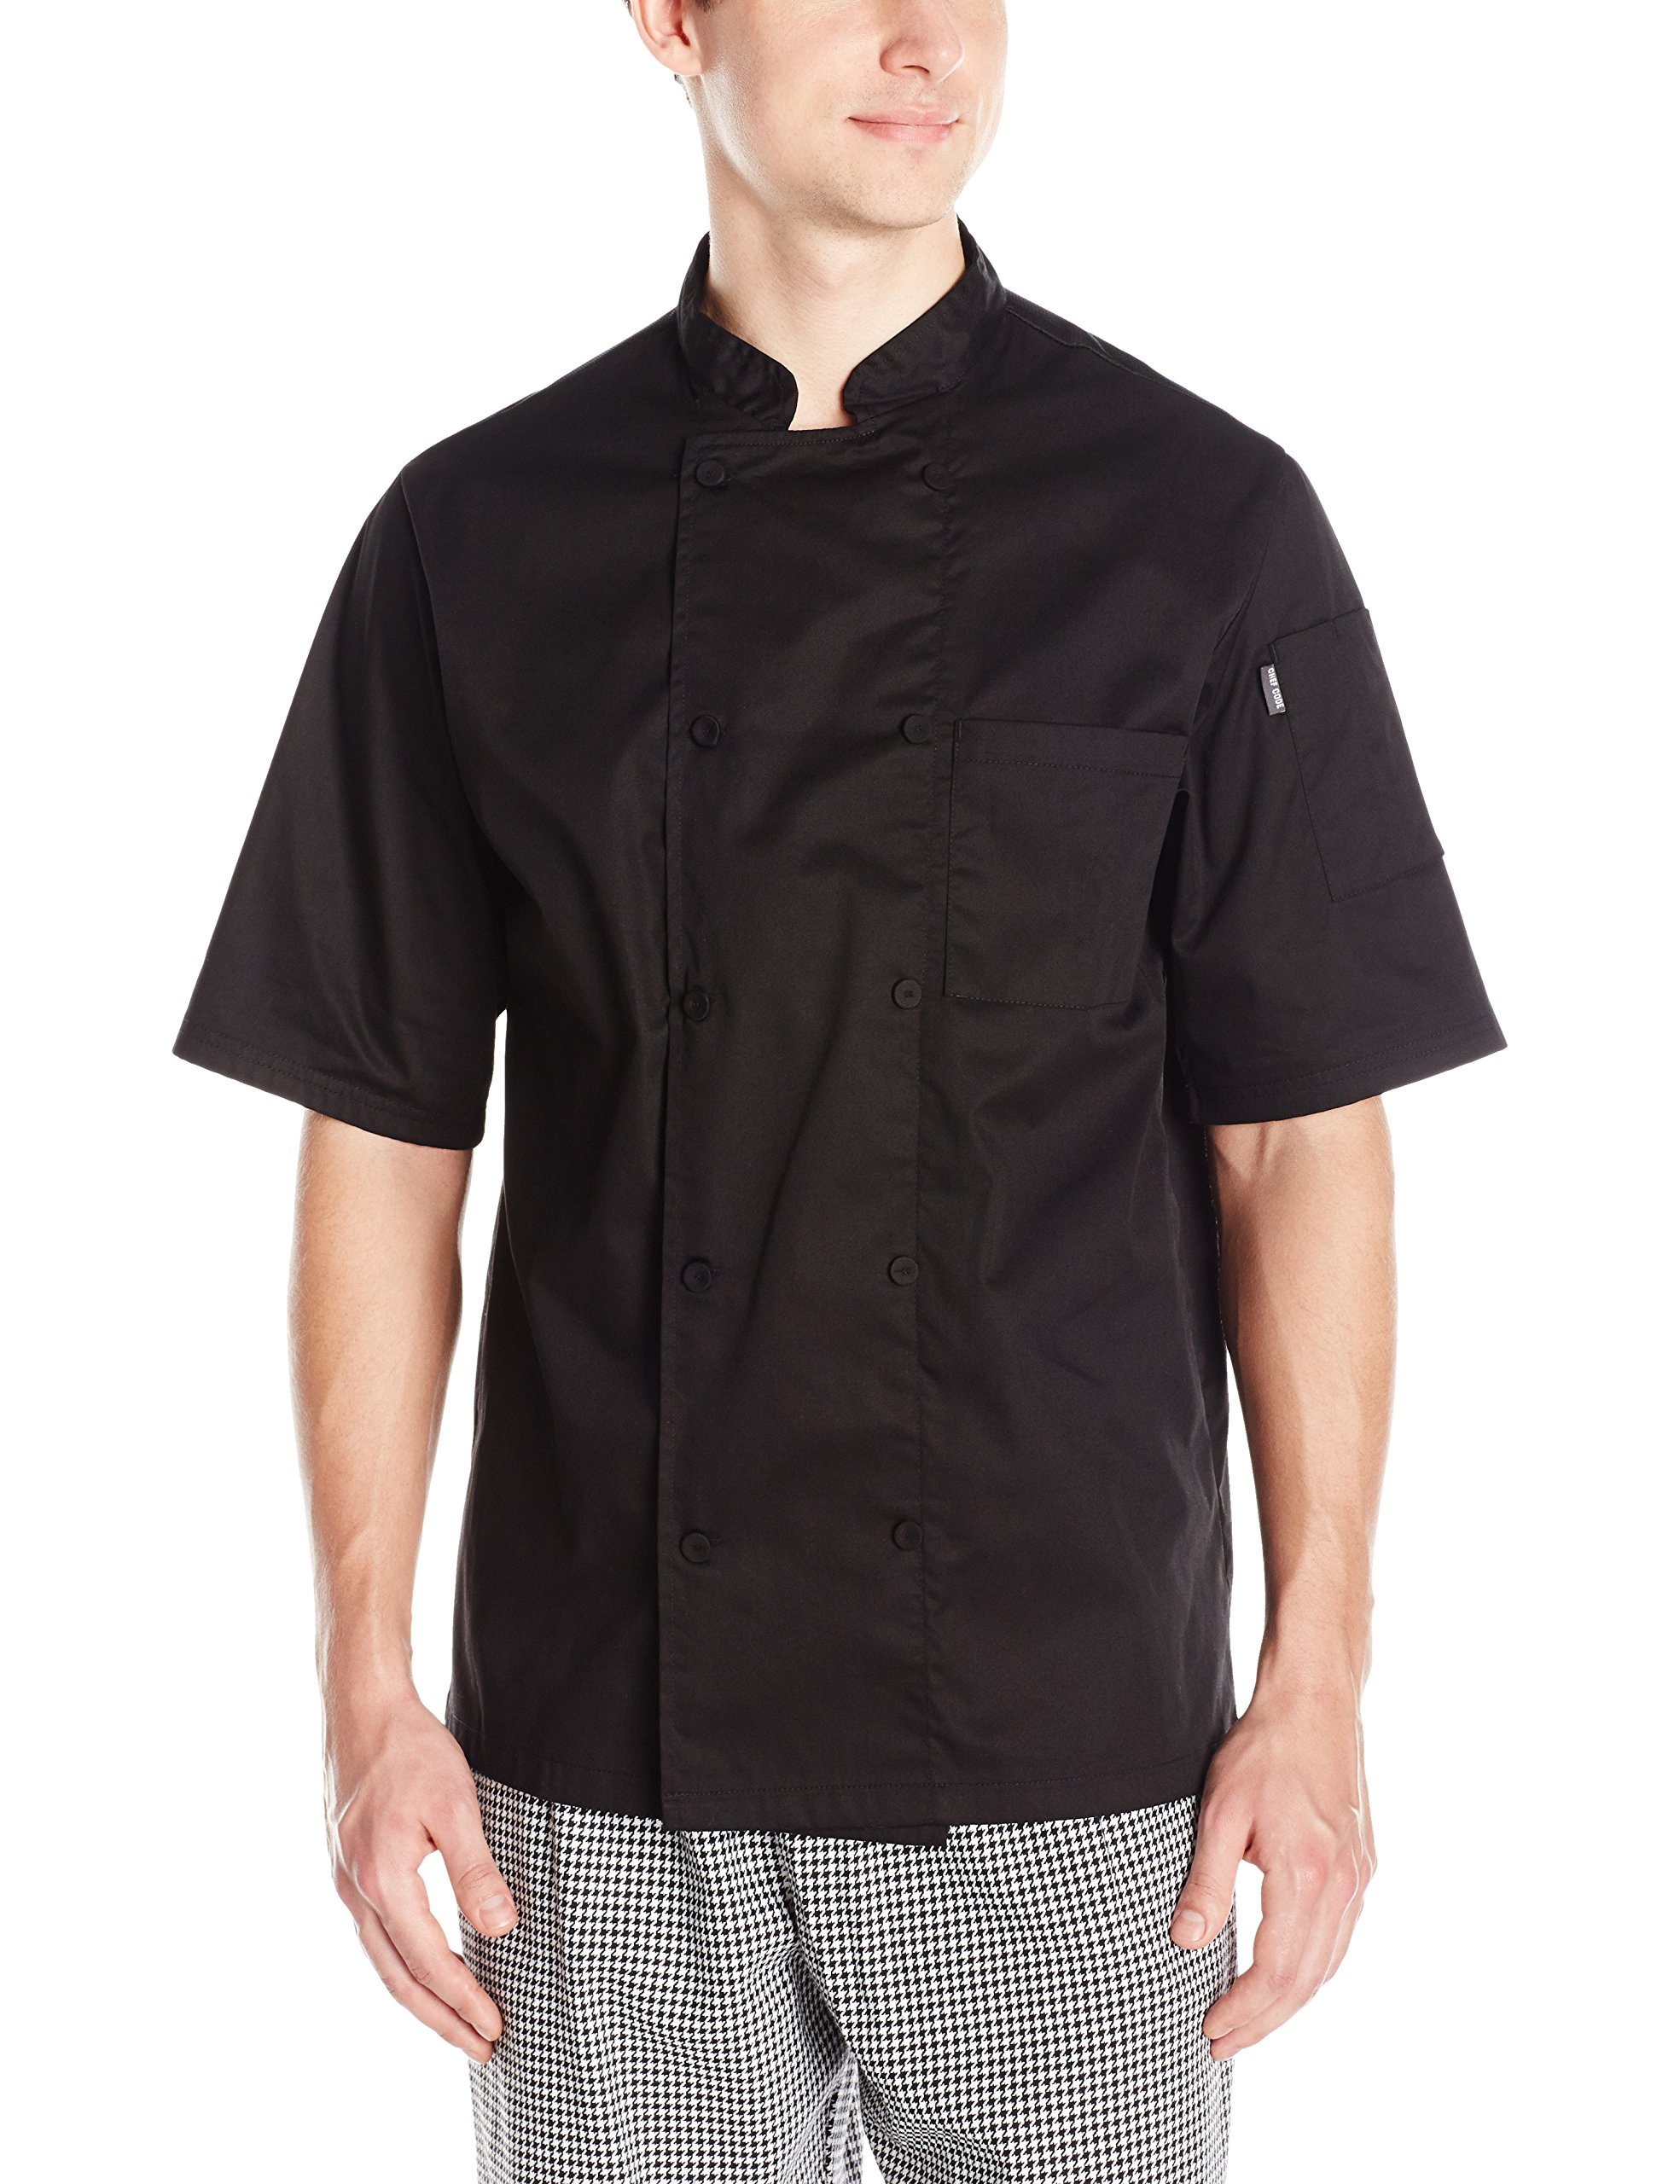 Chef Code Men's Short Sleeve Unisex Cool Breeze Chef Coats, Black, Large by Chef Code